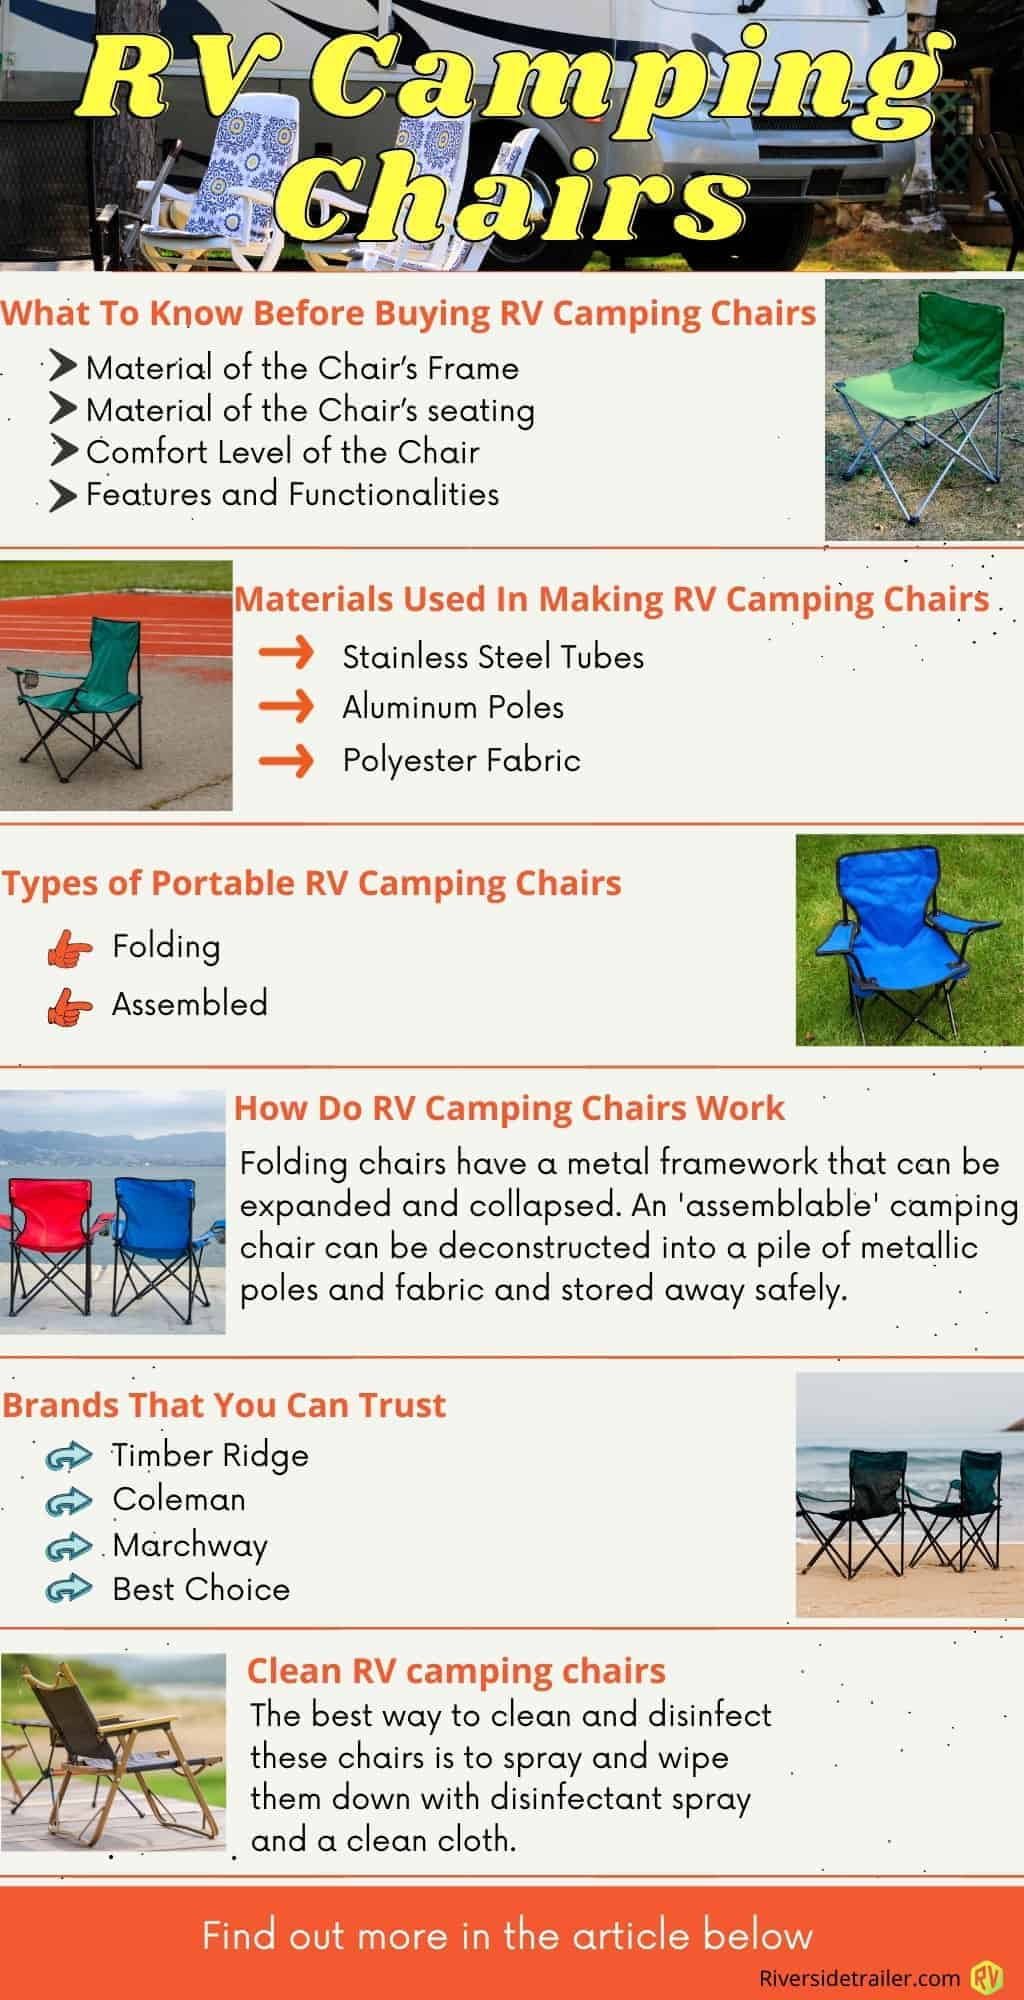 smallest-camping-chairs-for-rv